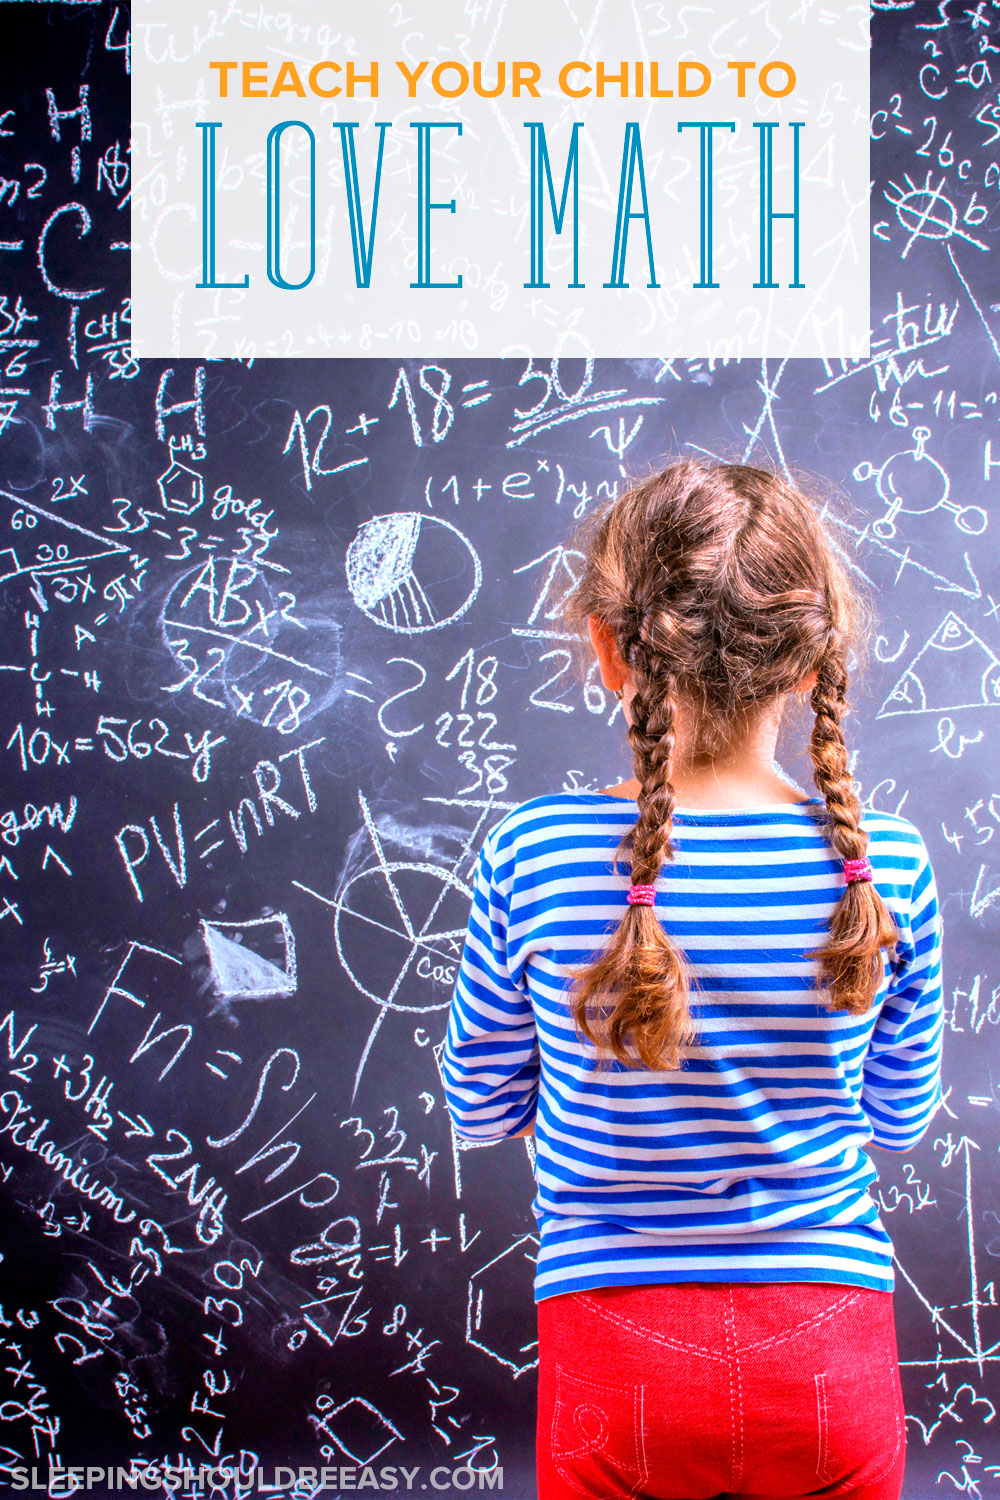 Does your child believe he's just not good at math? We're not born good or bad at math. Learn the techniques to teach your child to love math and numbers.